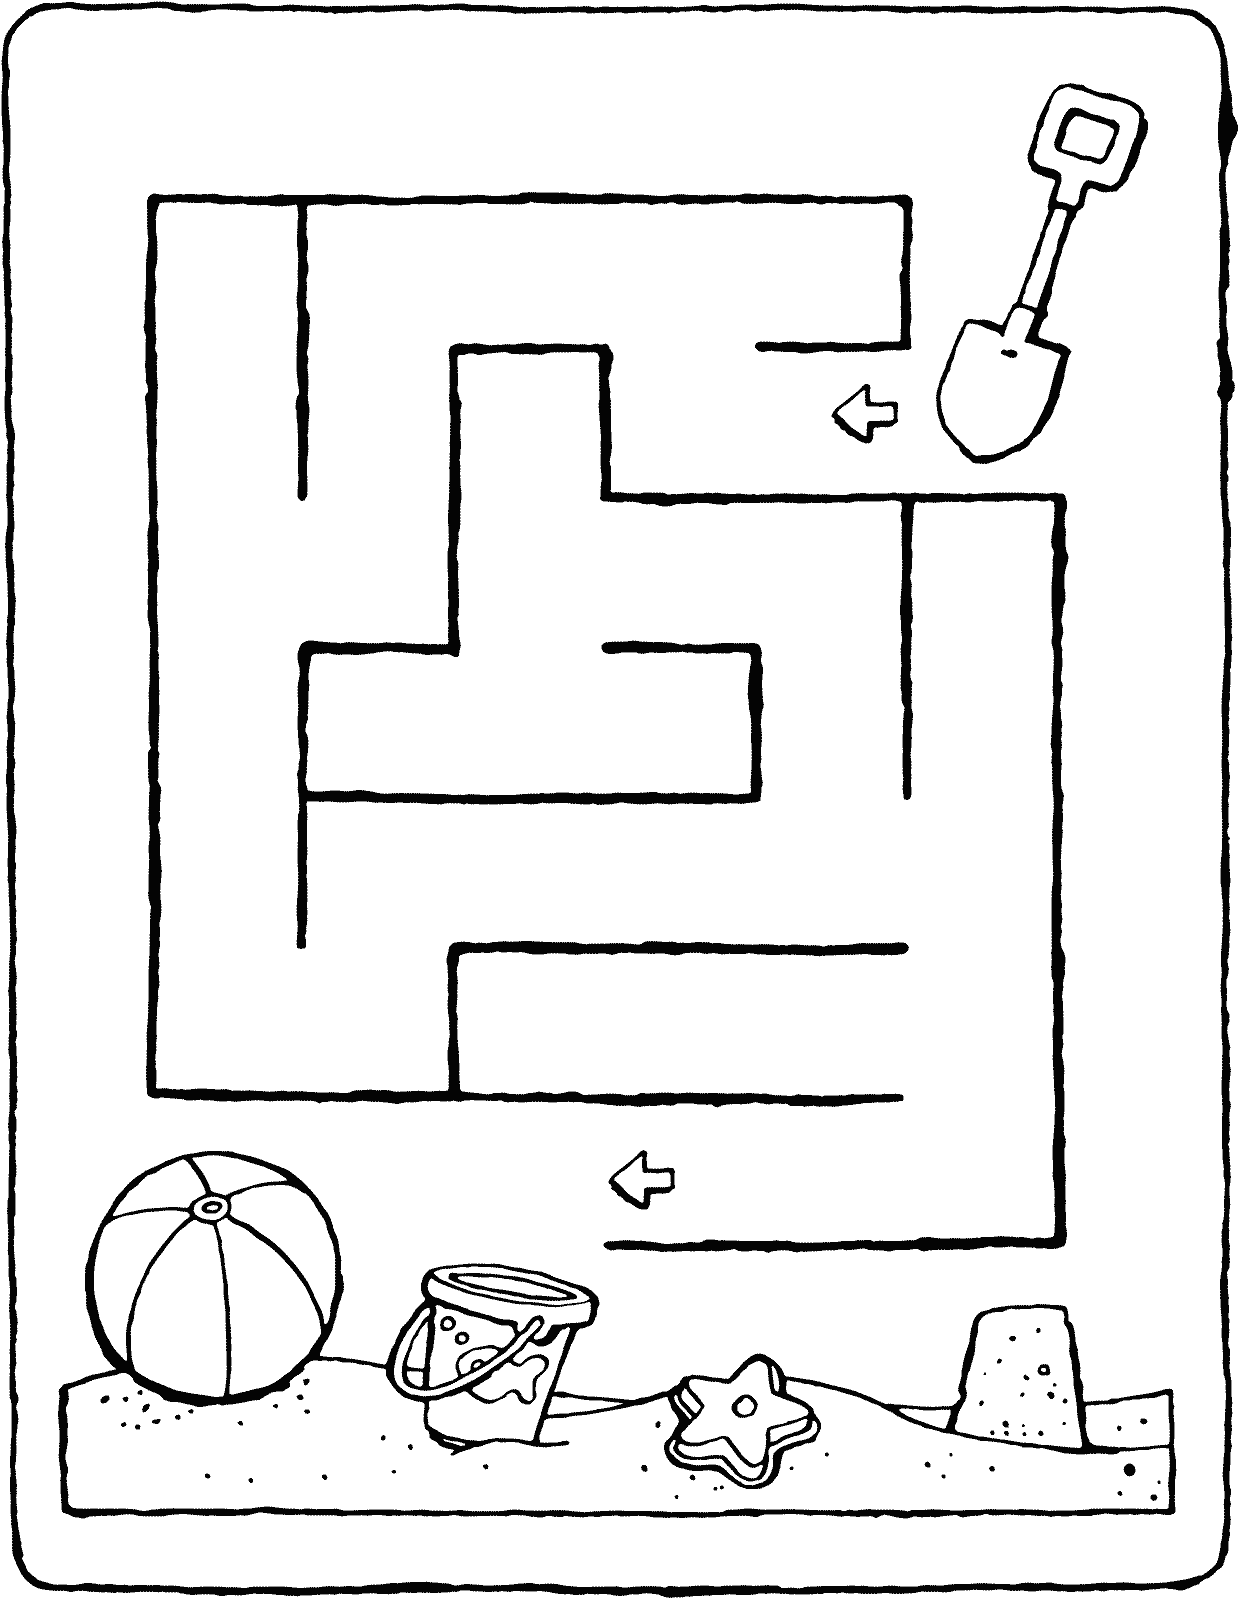 maze in the sand colouring page drawing picture 01V